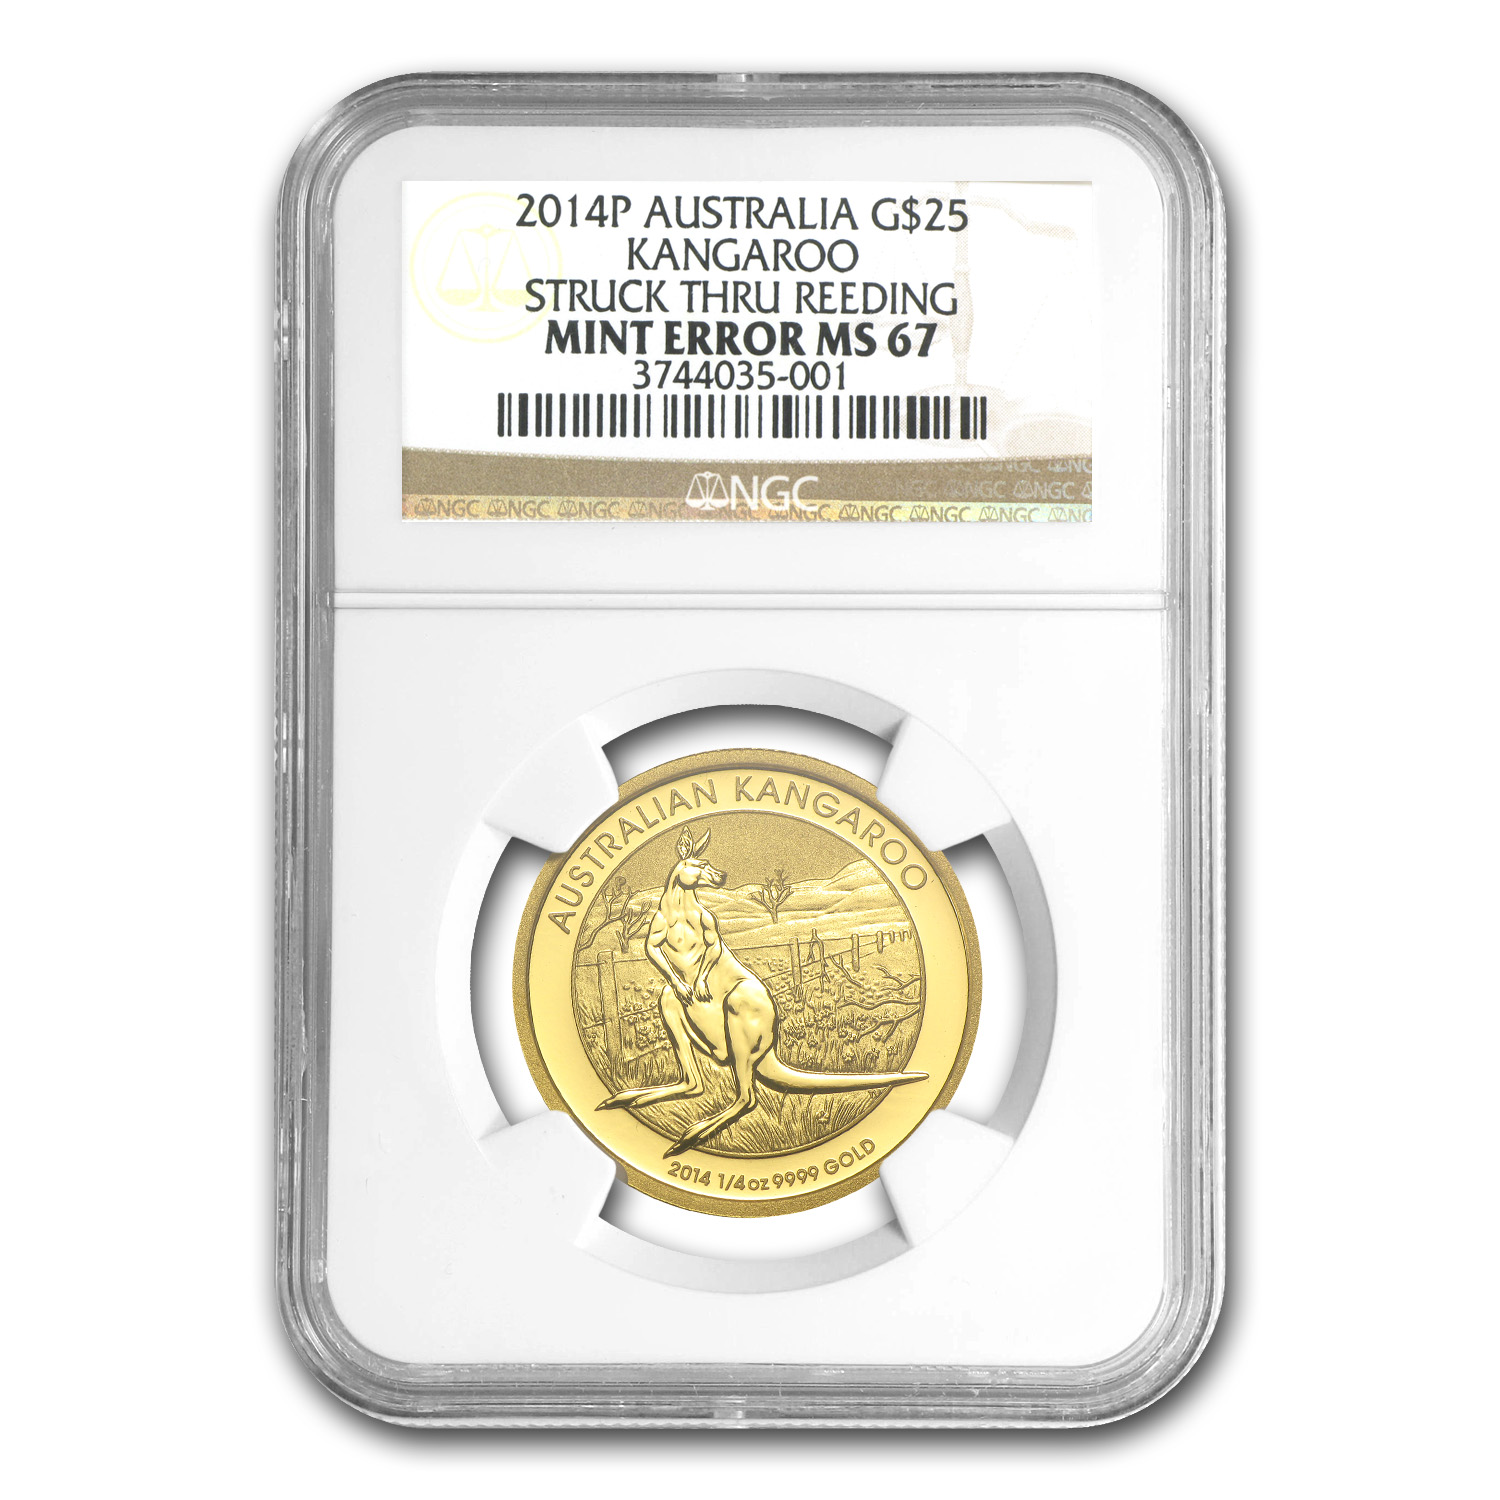 2014 Australia 1/4 oz Gold Kangaroo MS-67 NGC (Mint Error)